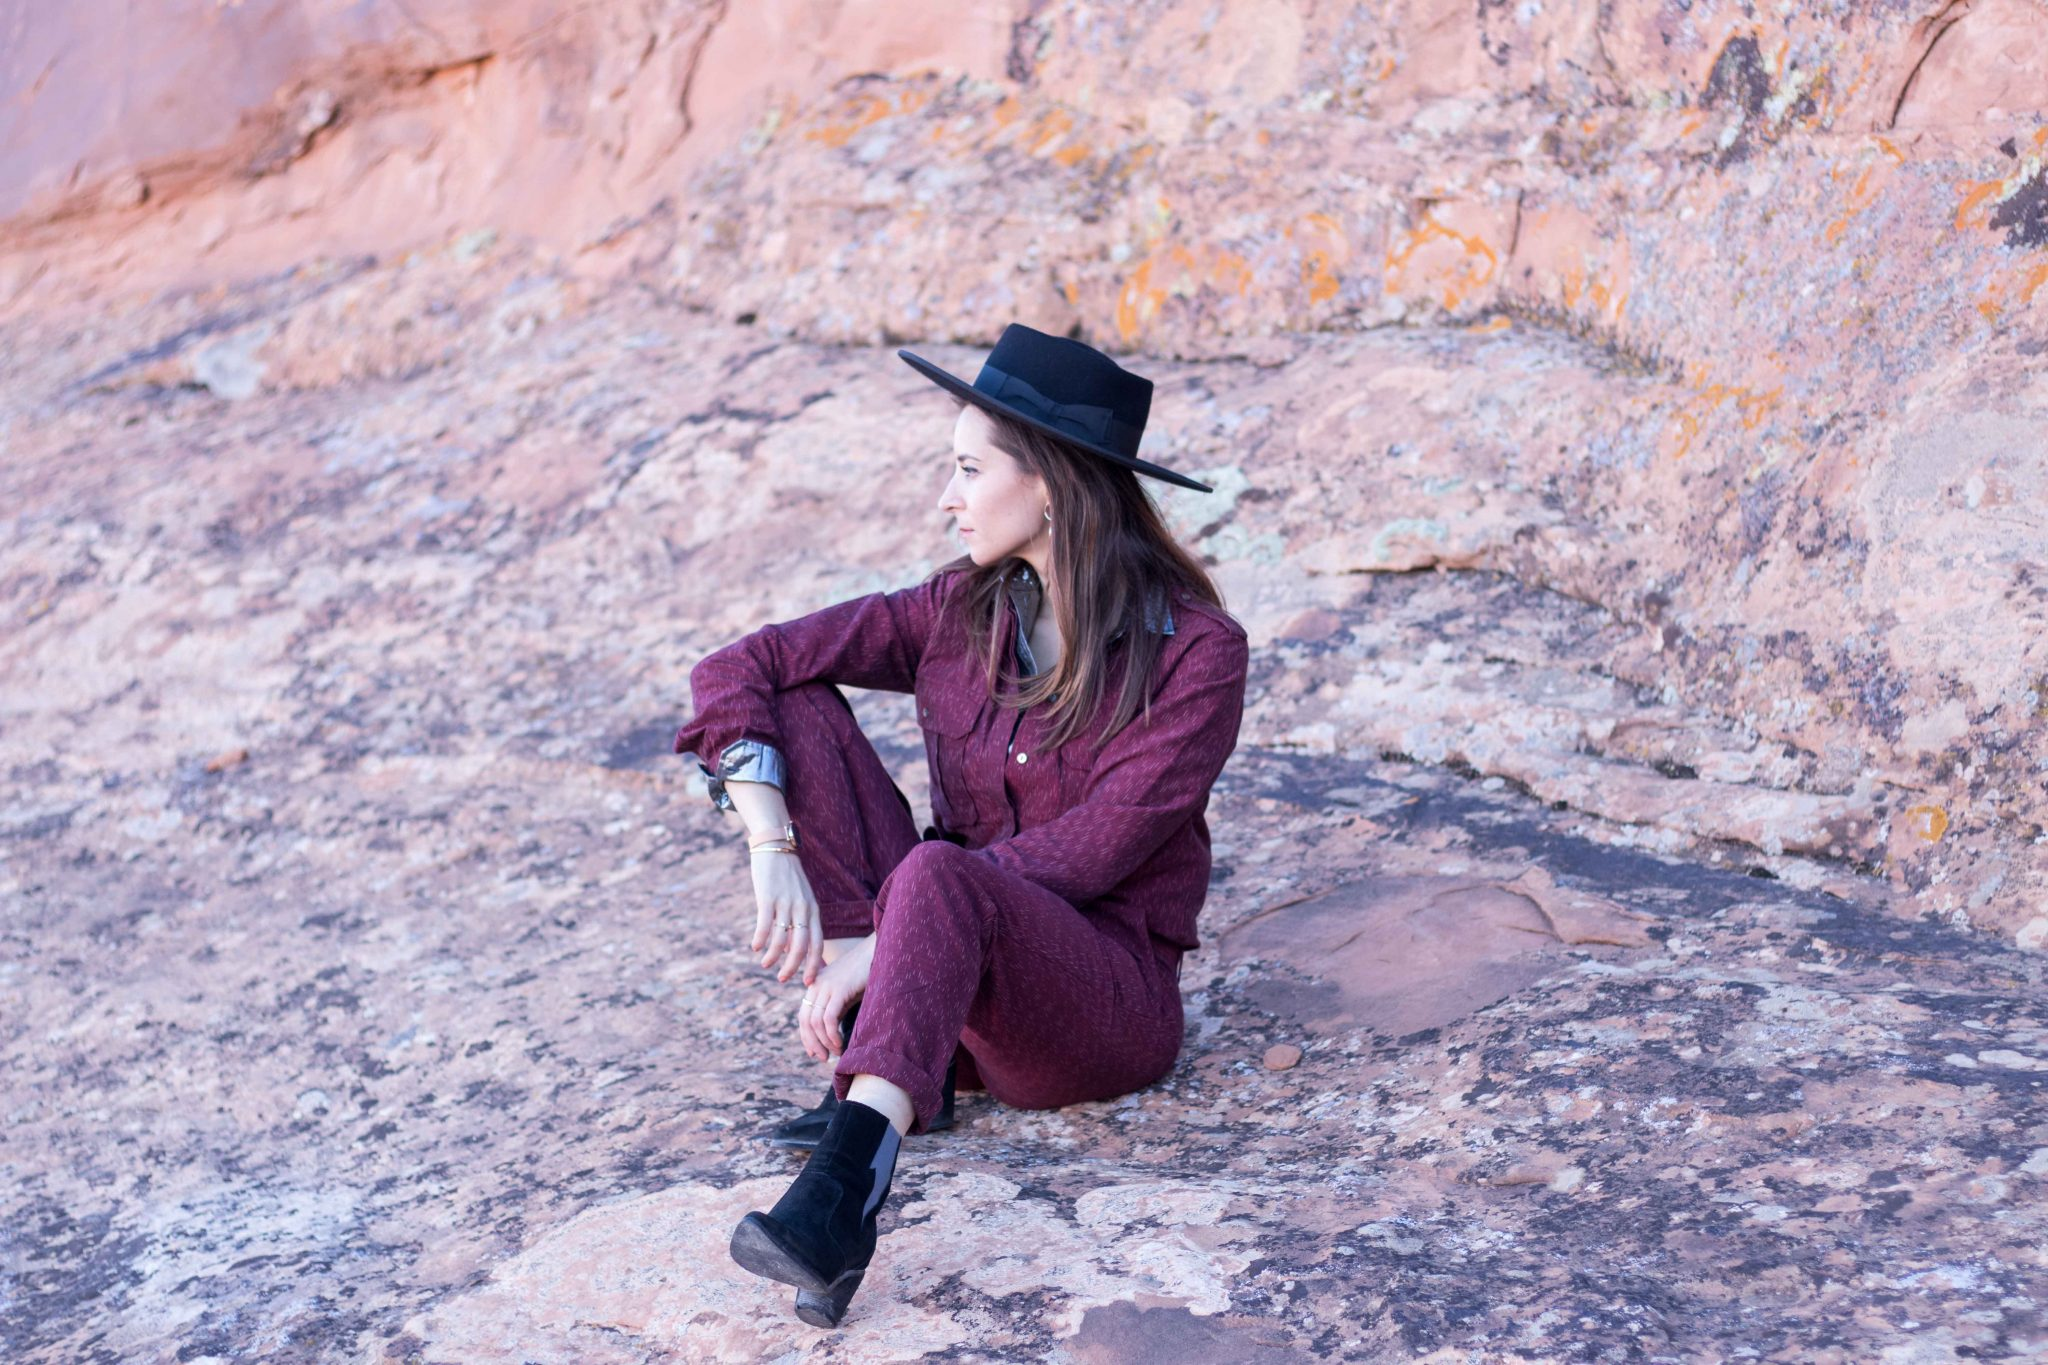 BILLIE JUMPSUIT FABRIC HUNTED AND COLLECTED - ETHICAL FASHION - ARCHES - From Las Vegas to Moab: 5 tips for your road trip: Bryce Canyon, Arches National Park, Canyonlands national park